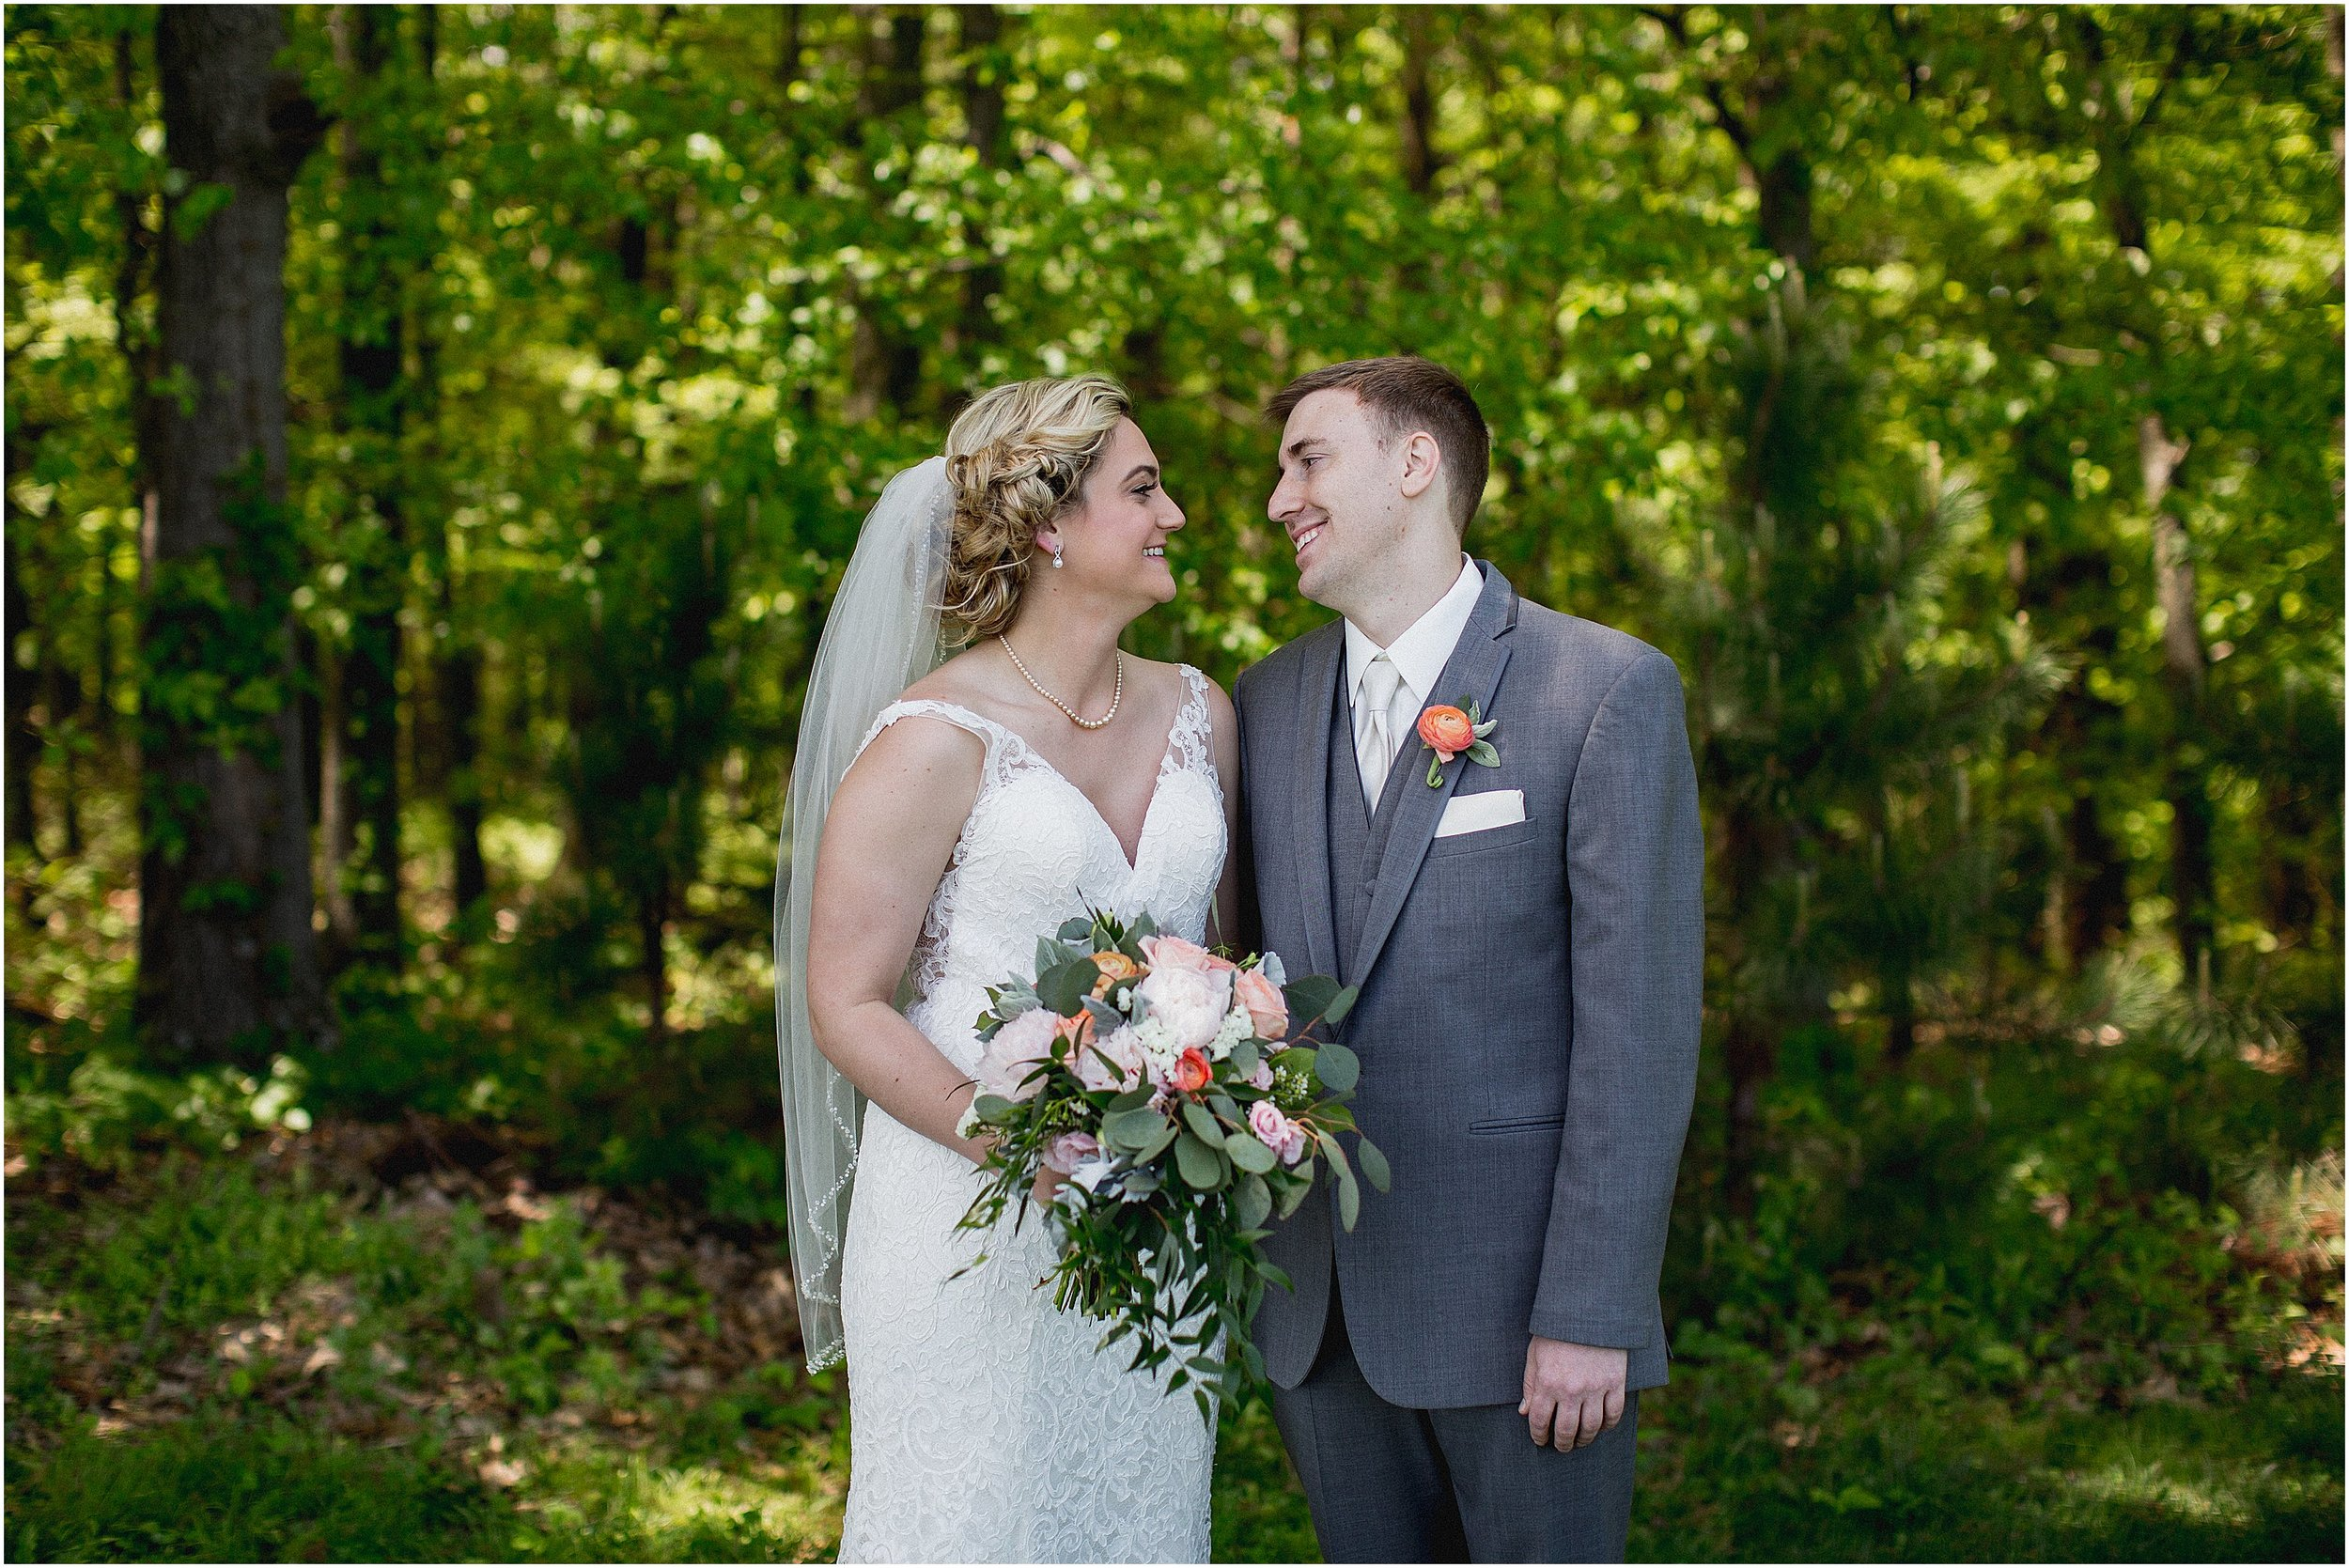 Whispering_Oaks_Wedding_Photographer_0438.jpg